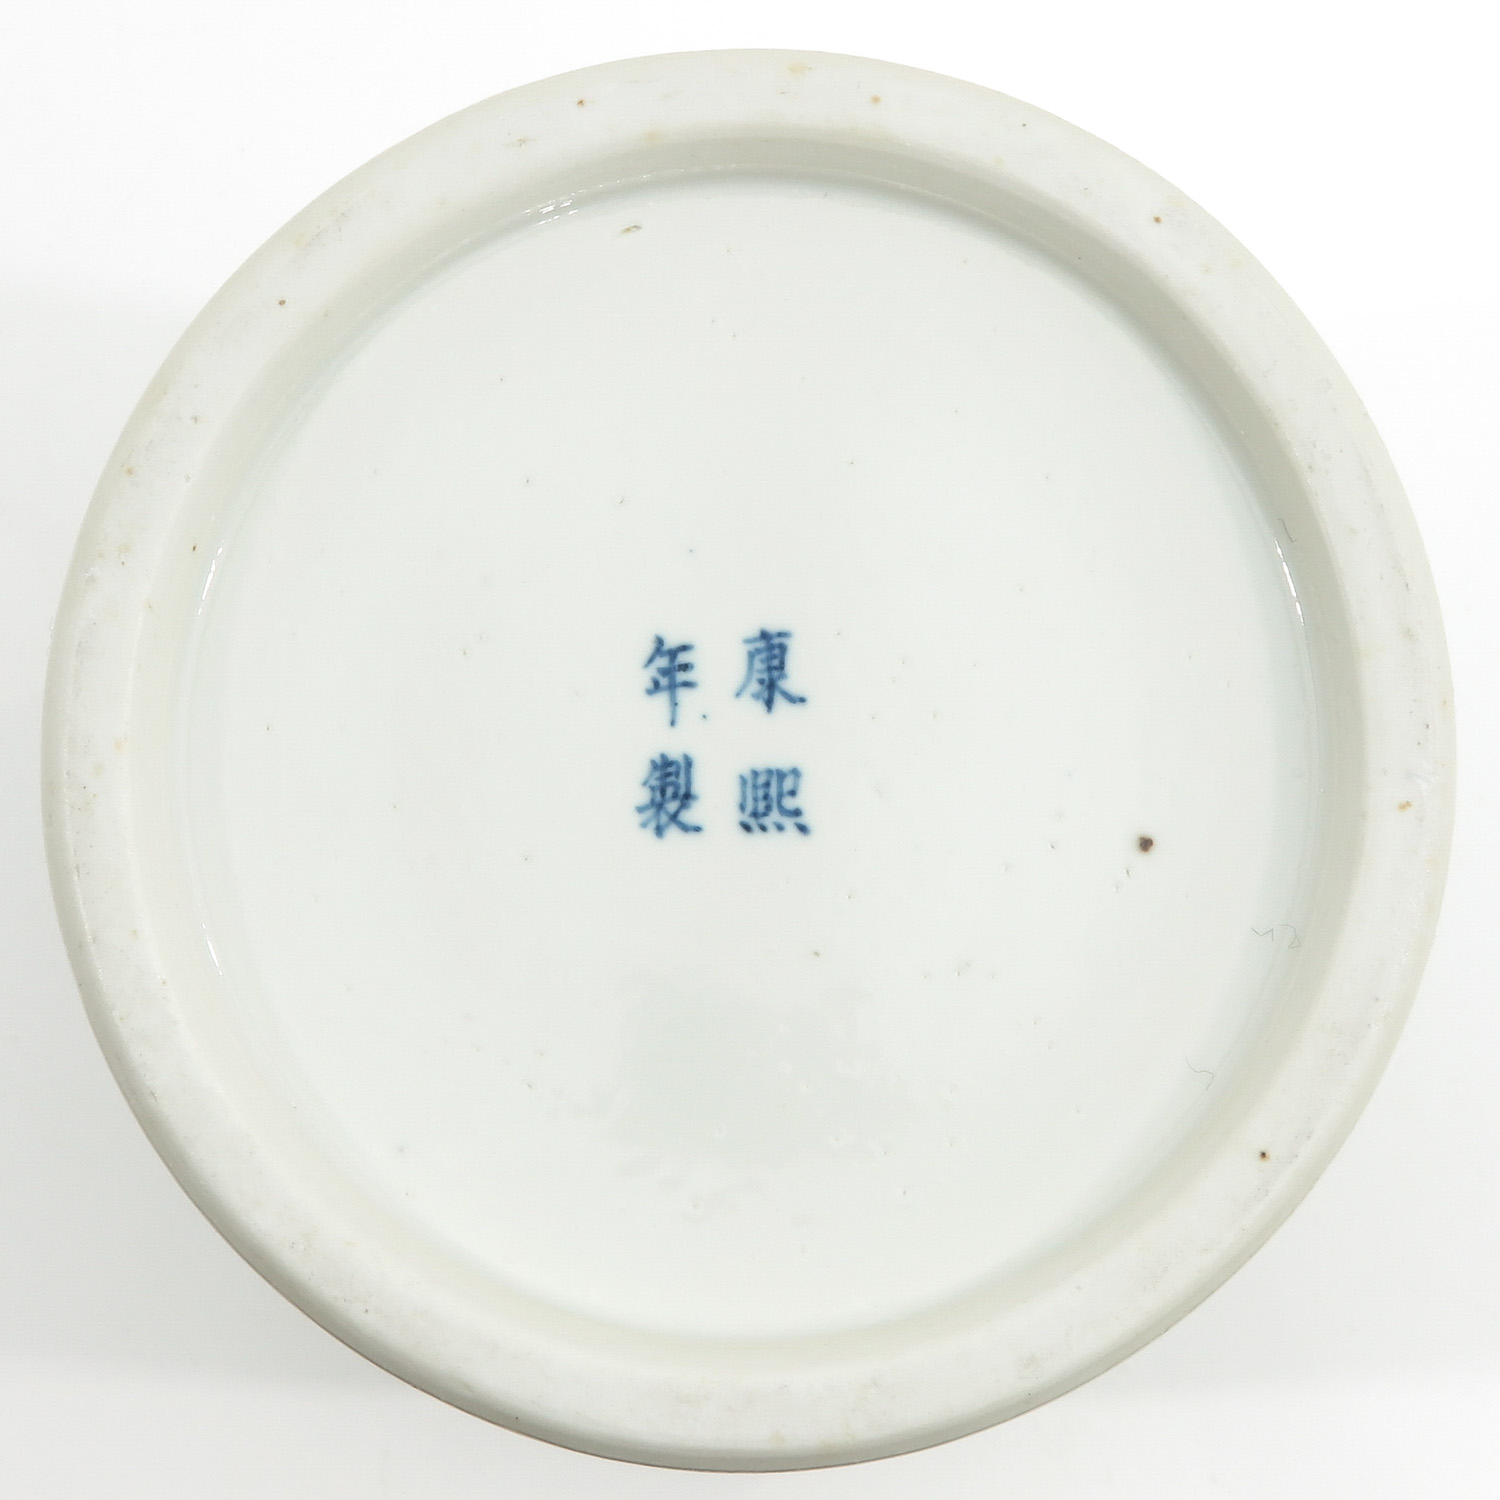 A Blue and White Vase - Image 6 of 10